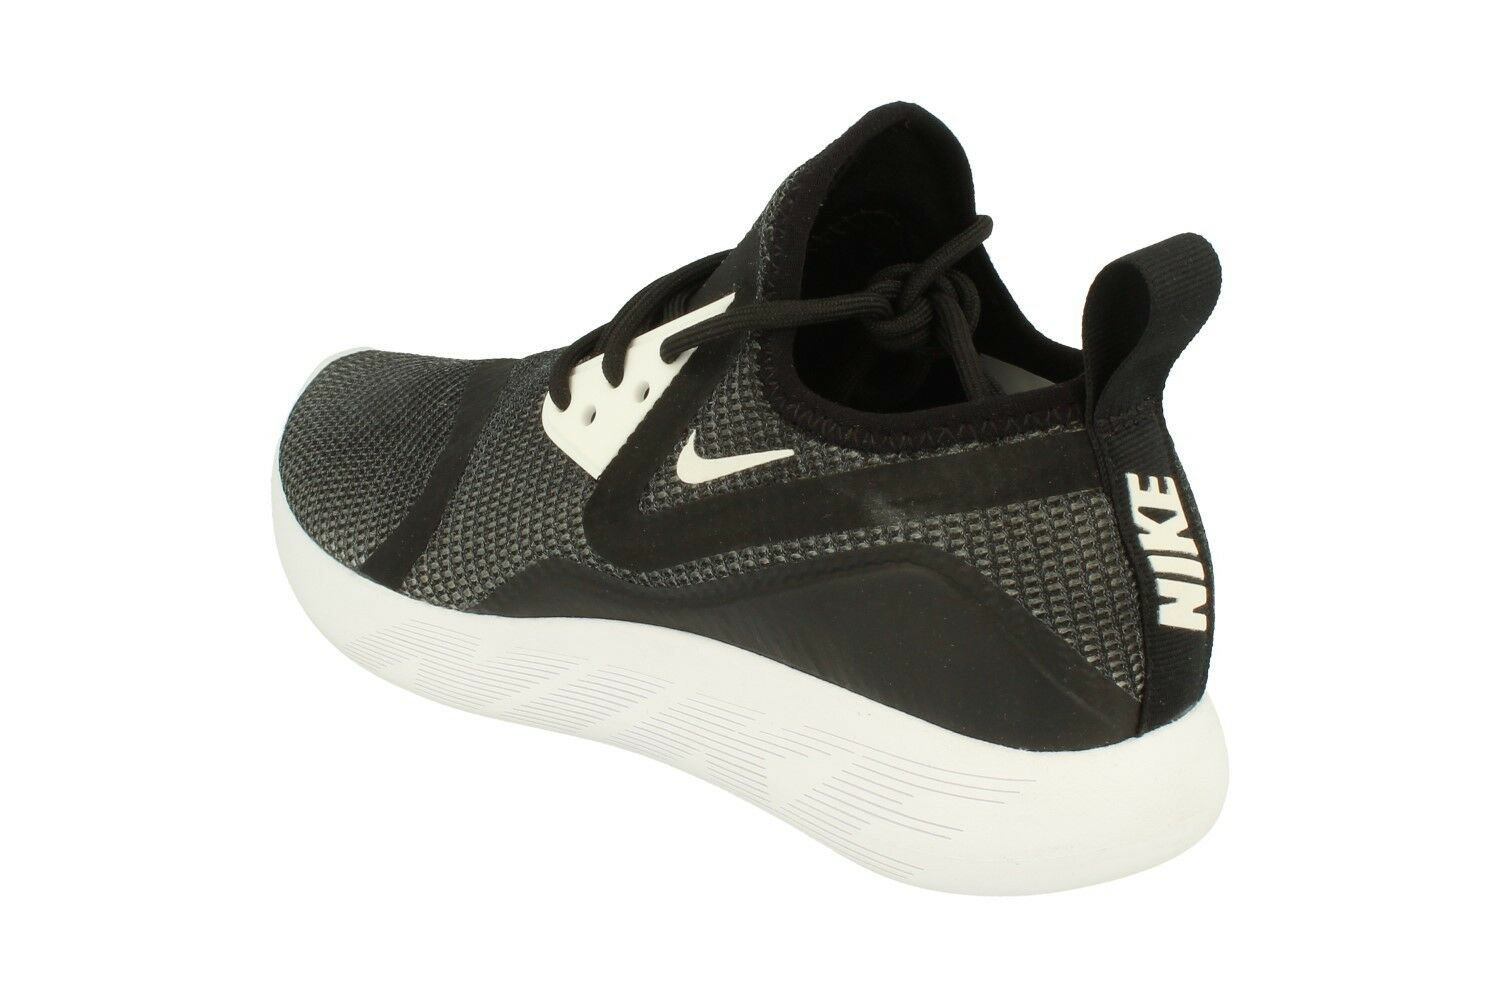 Nike Womens Lunarcharge BR womens womens womens Running Trainers 942060 Sneakers Shoes 001 8f2436